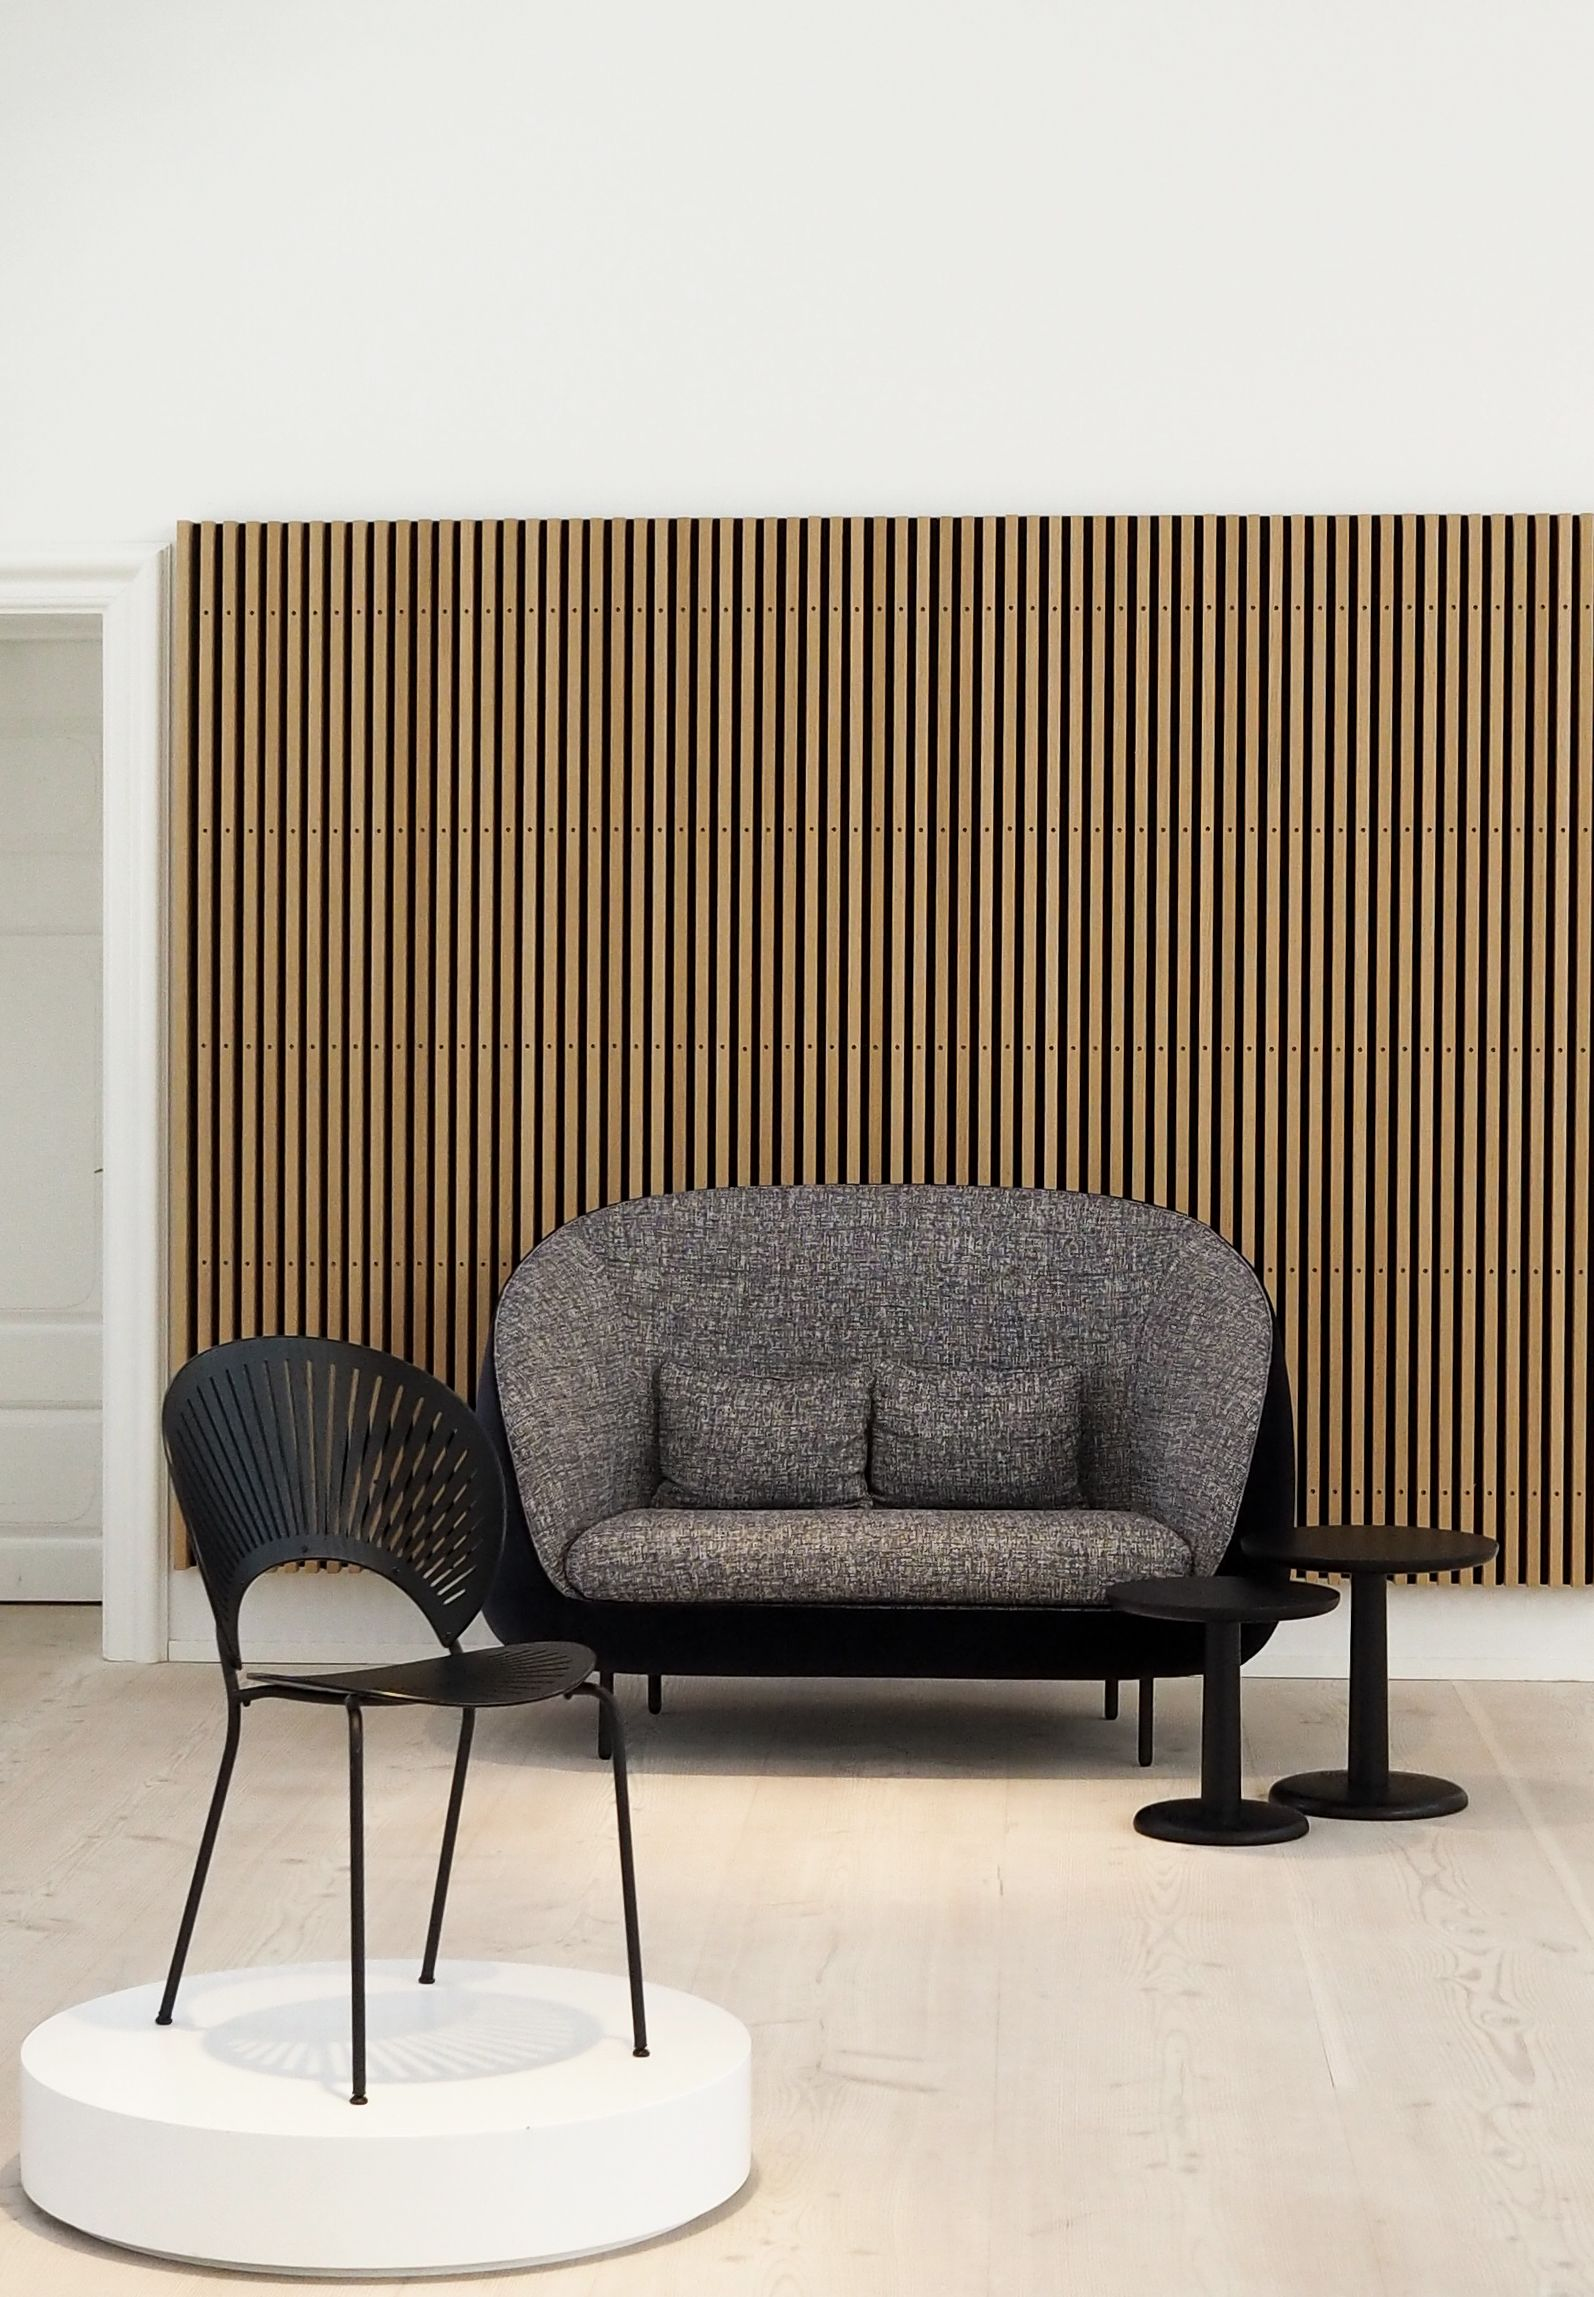 Danish modern furniture design for fredericia trinidad chair haiku sofa and pon tables shot by hannah trickett